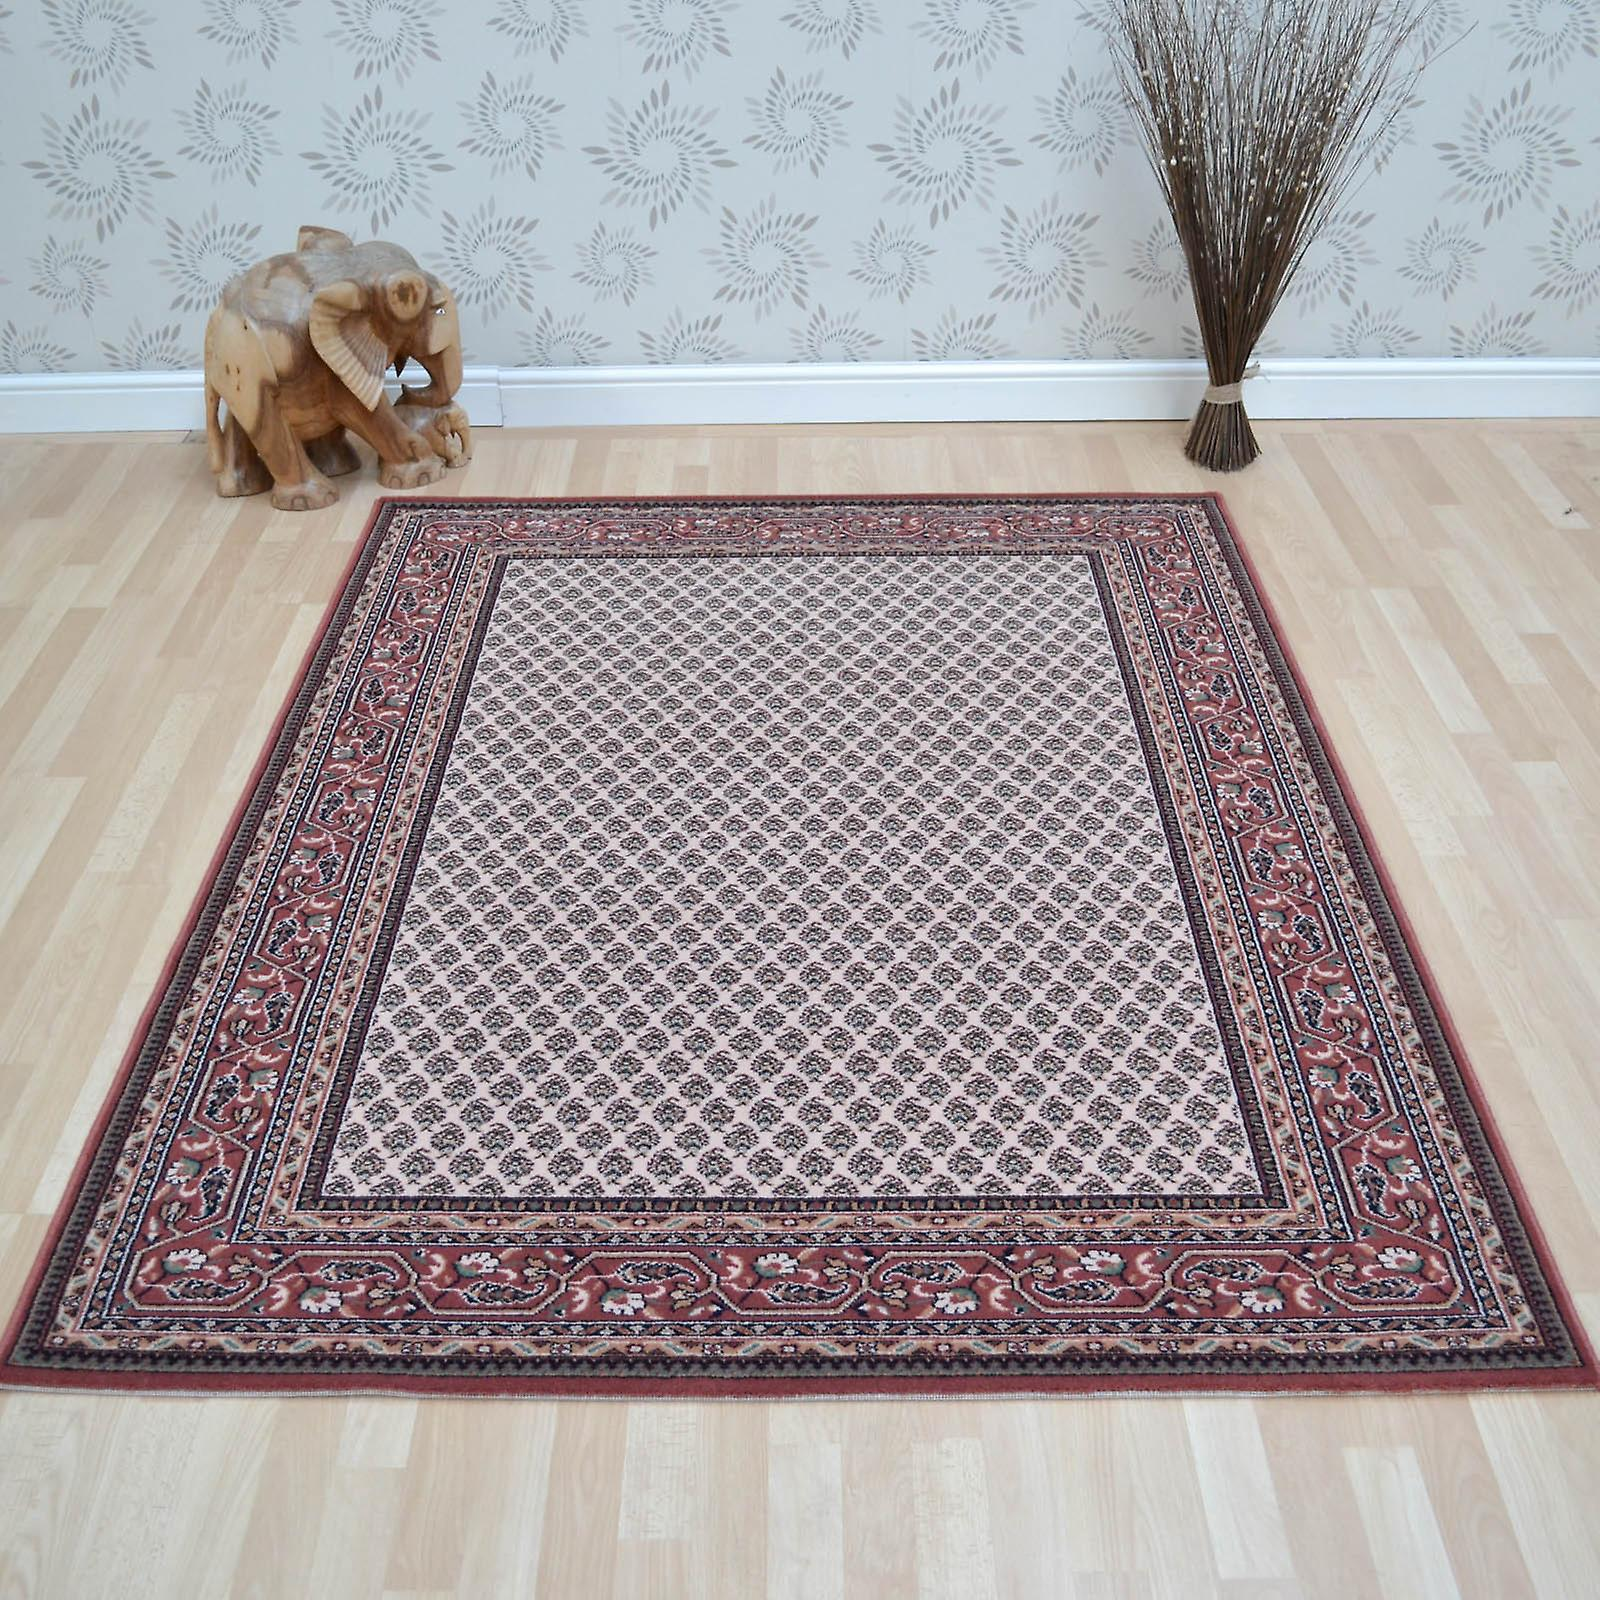 Lano Royal Rugs 1581 515 Beige Rose